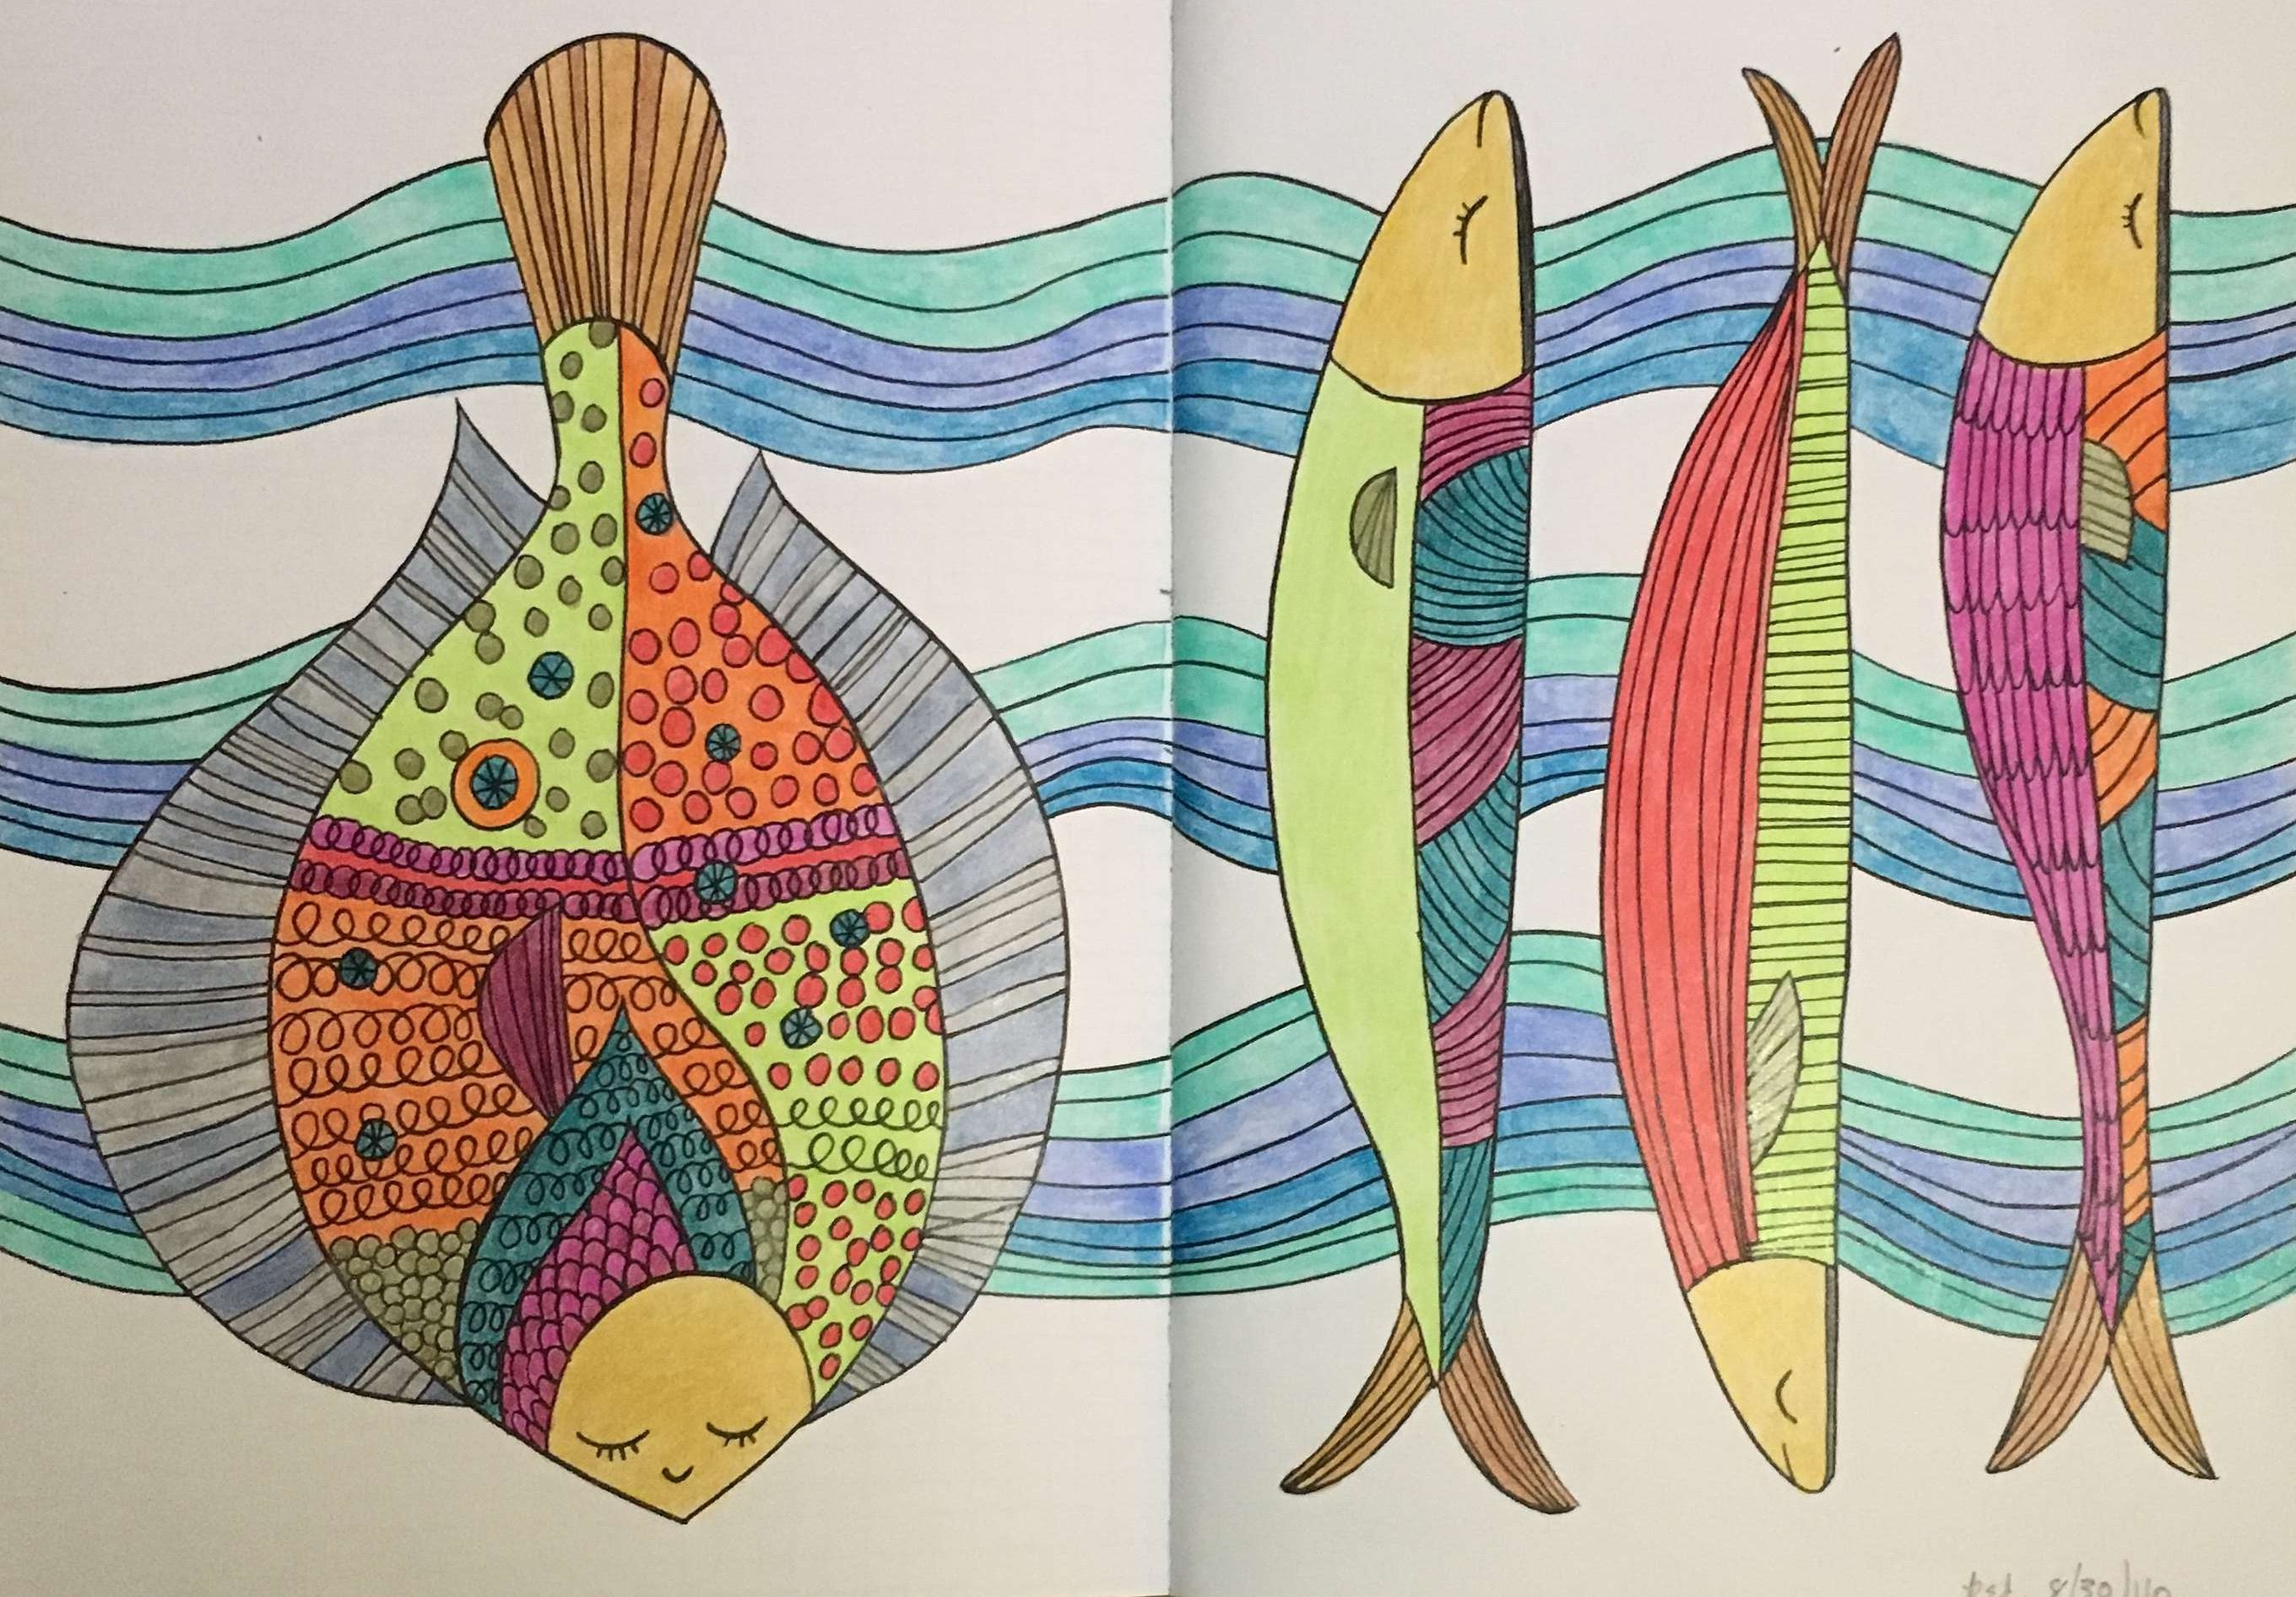 From The Mindfulness Coloring Book Volume Two By Emma Farrarons Coloring Books Coloring Pages Color